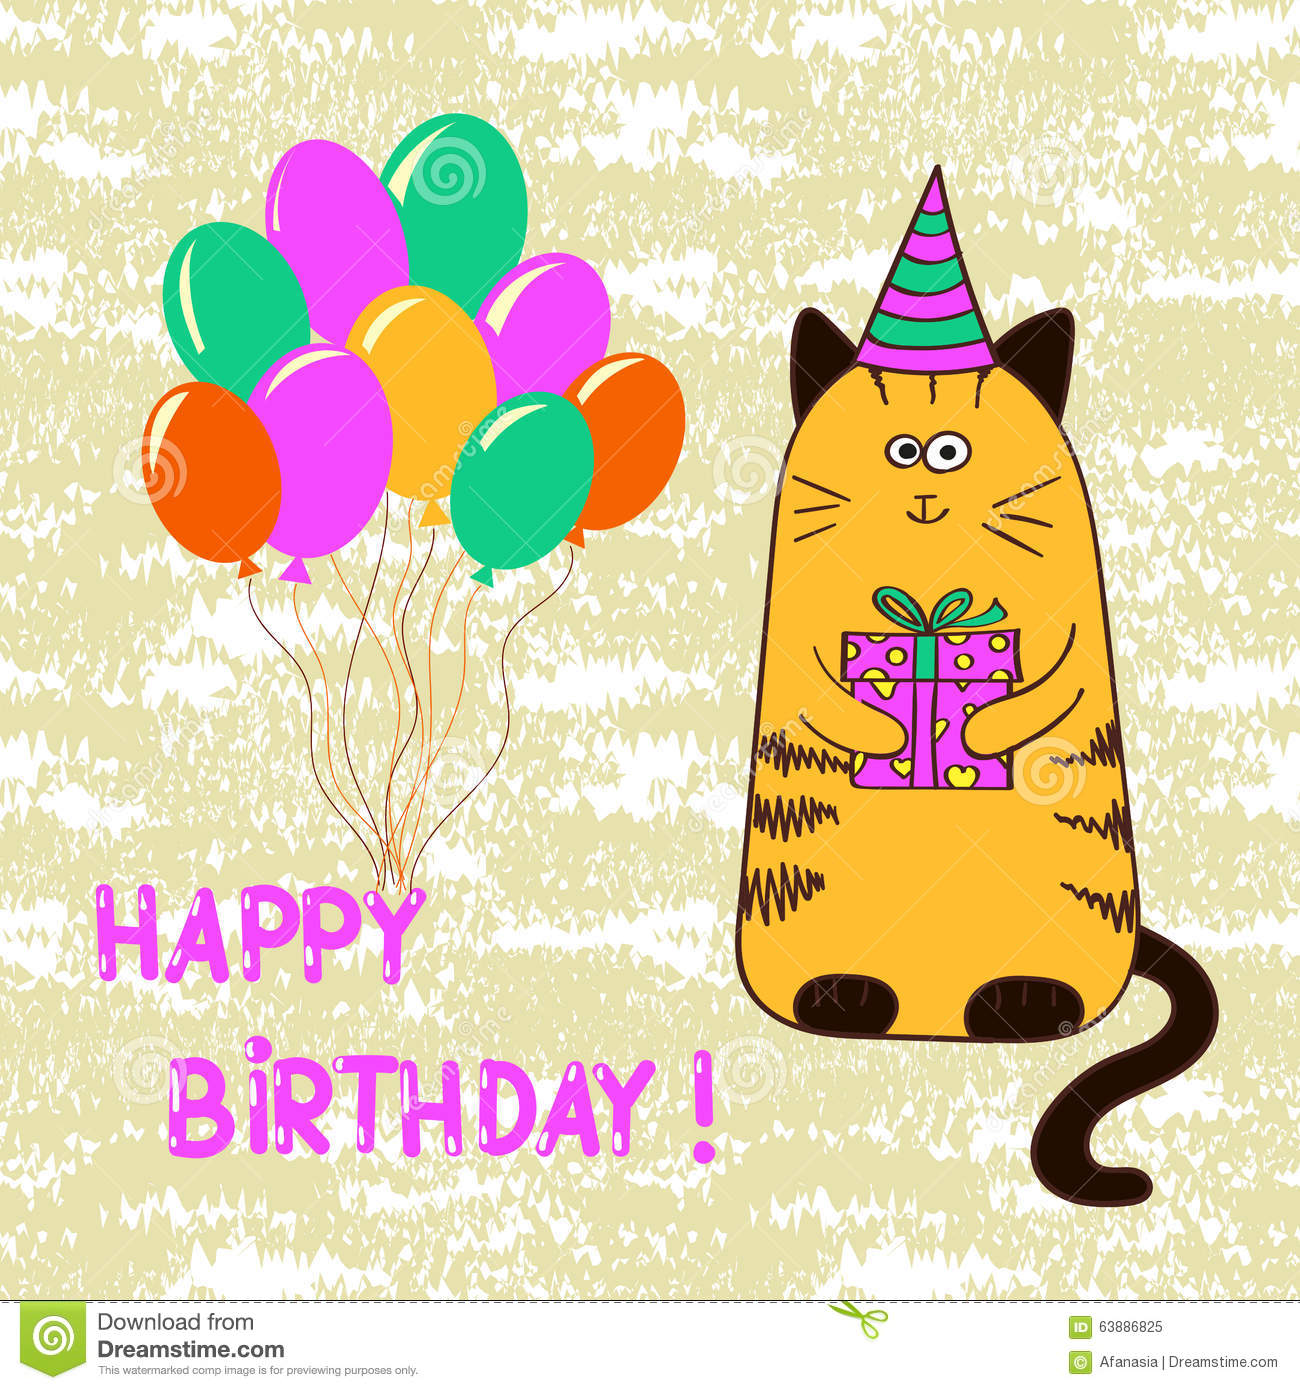 6 Birthday Card Templates: Happy Birthday Card Template With Cute Cat. Stock Vector